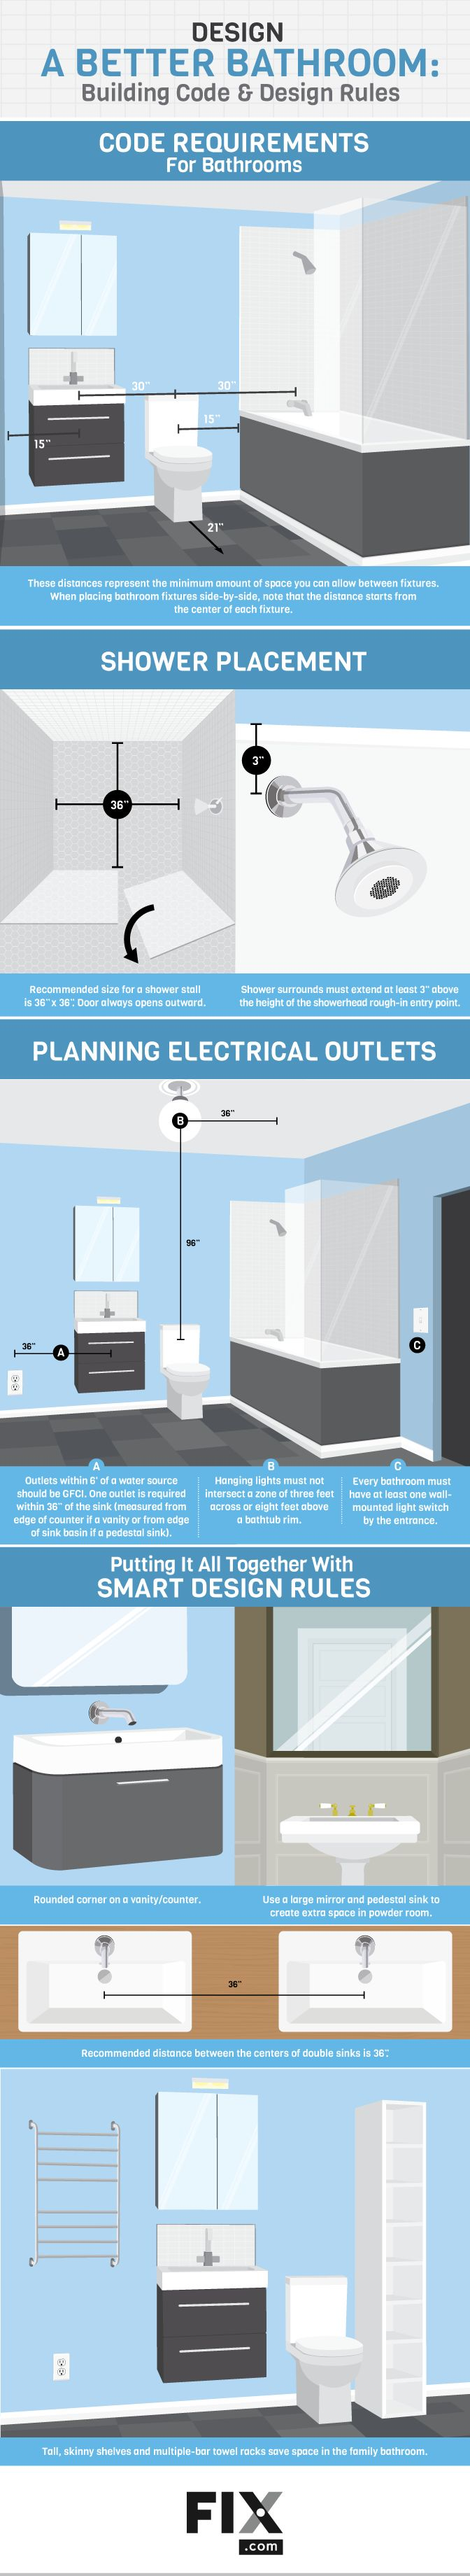 Art Exhibition A Better Bathroom Building Code and Design Rules infographic